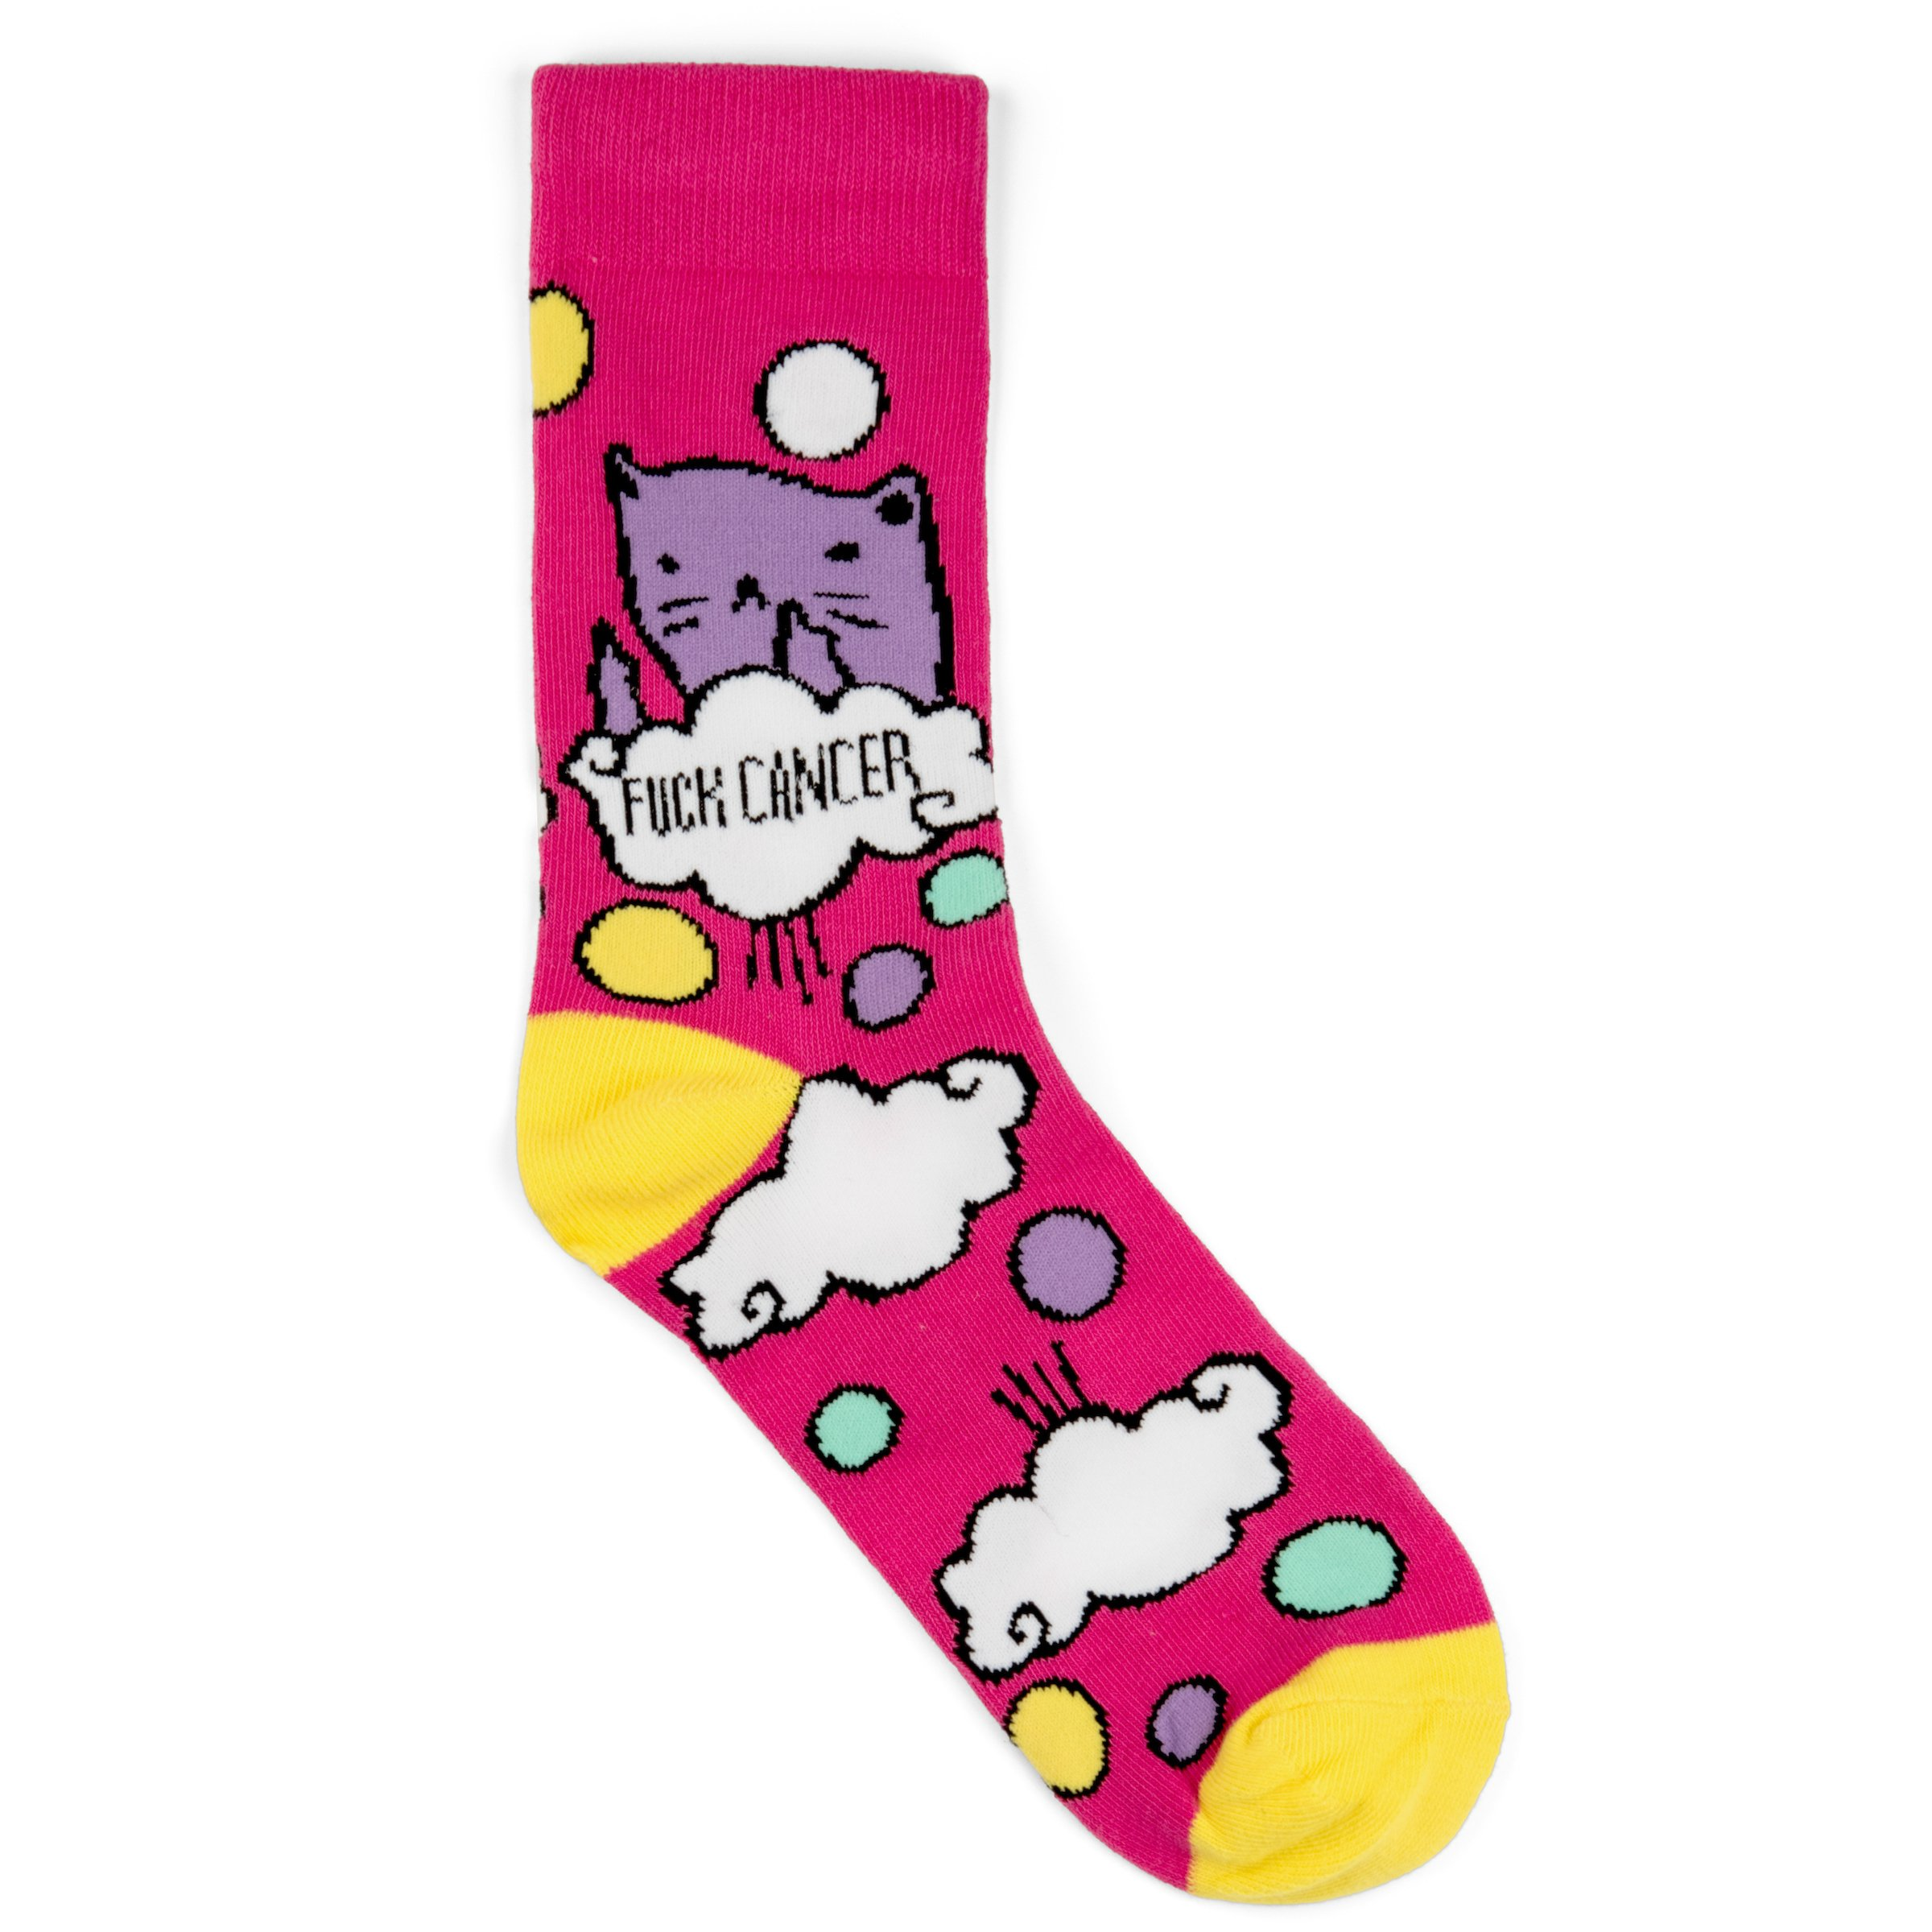 ''Fuck Cancer'' Socks - Funny Novelty Gag Gift Idea for a Breast Cancer Survivor or Chemo Patient - Pink with Cat Awareness Apparel